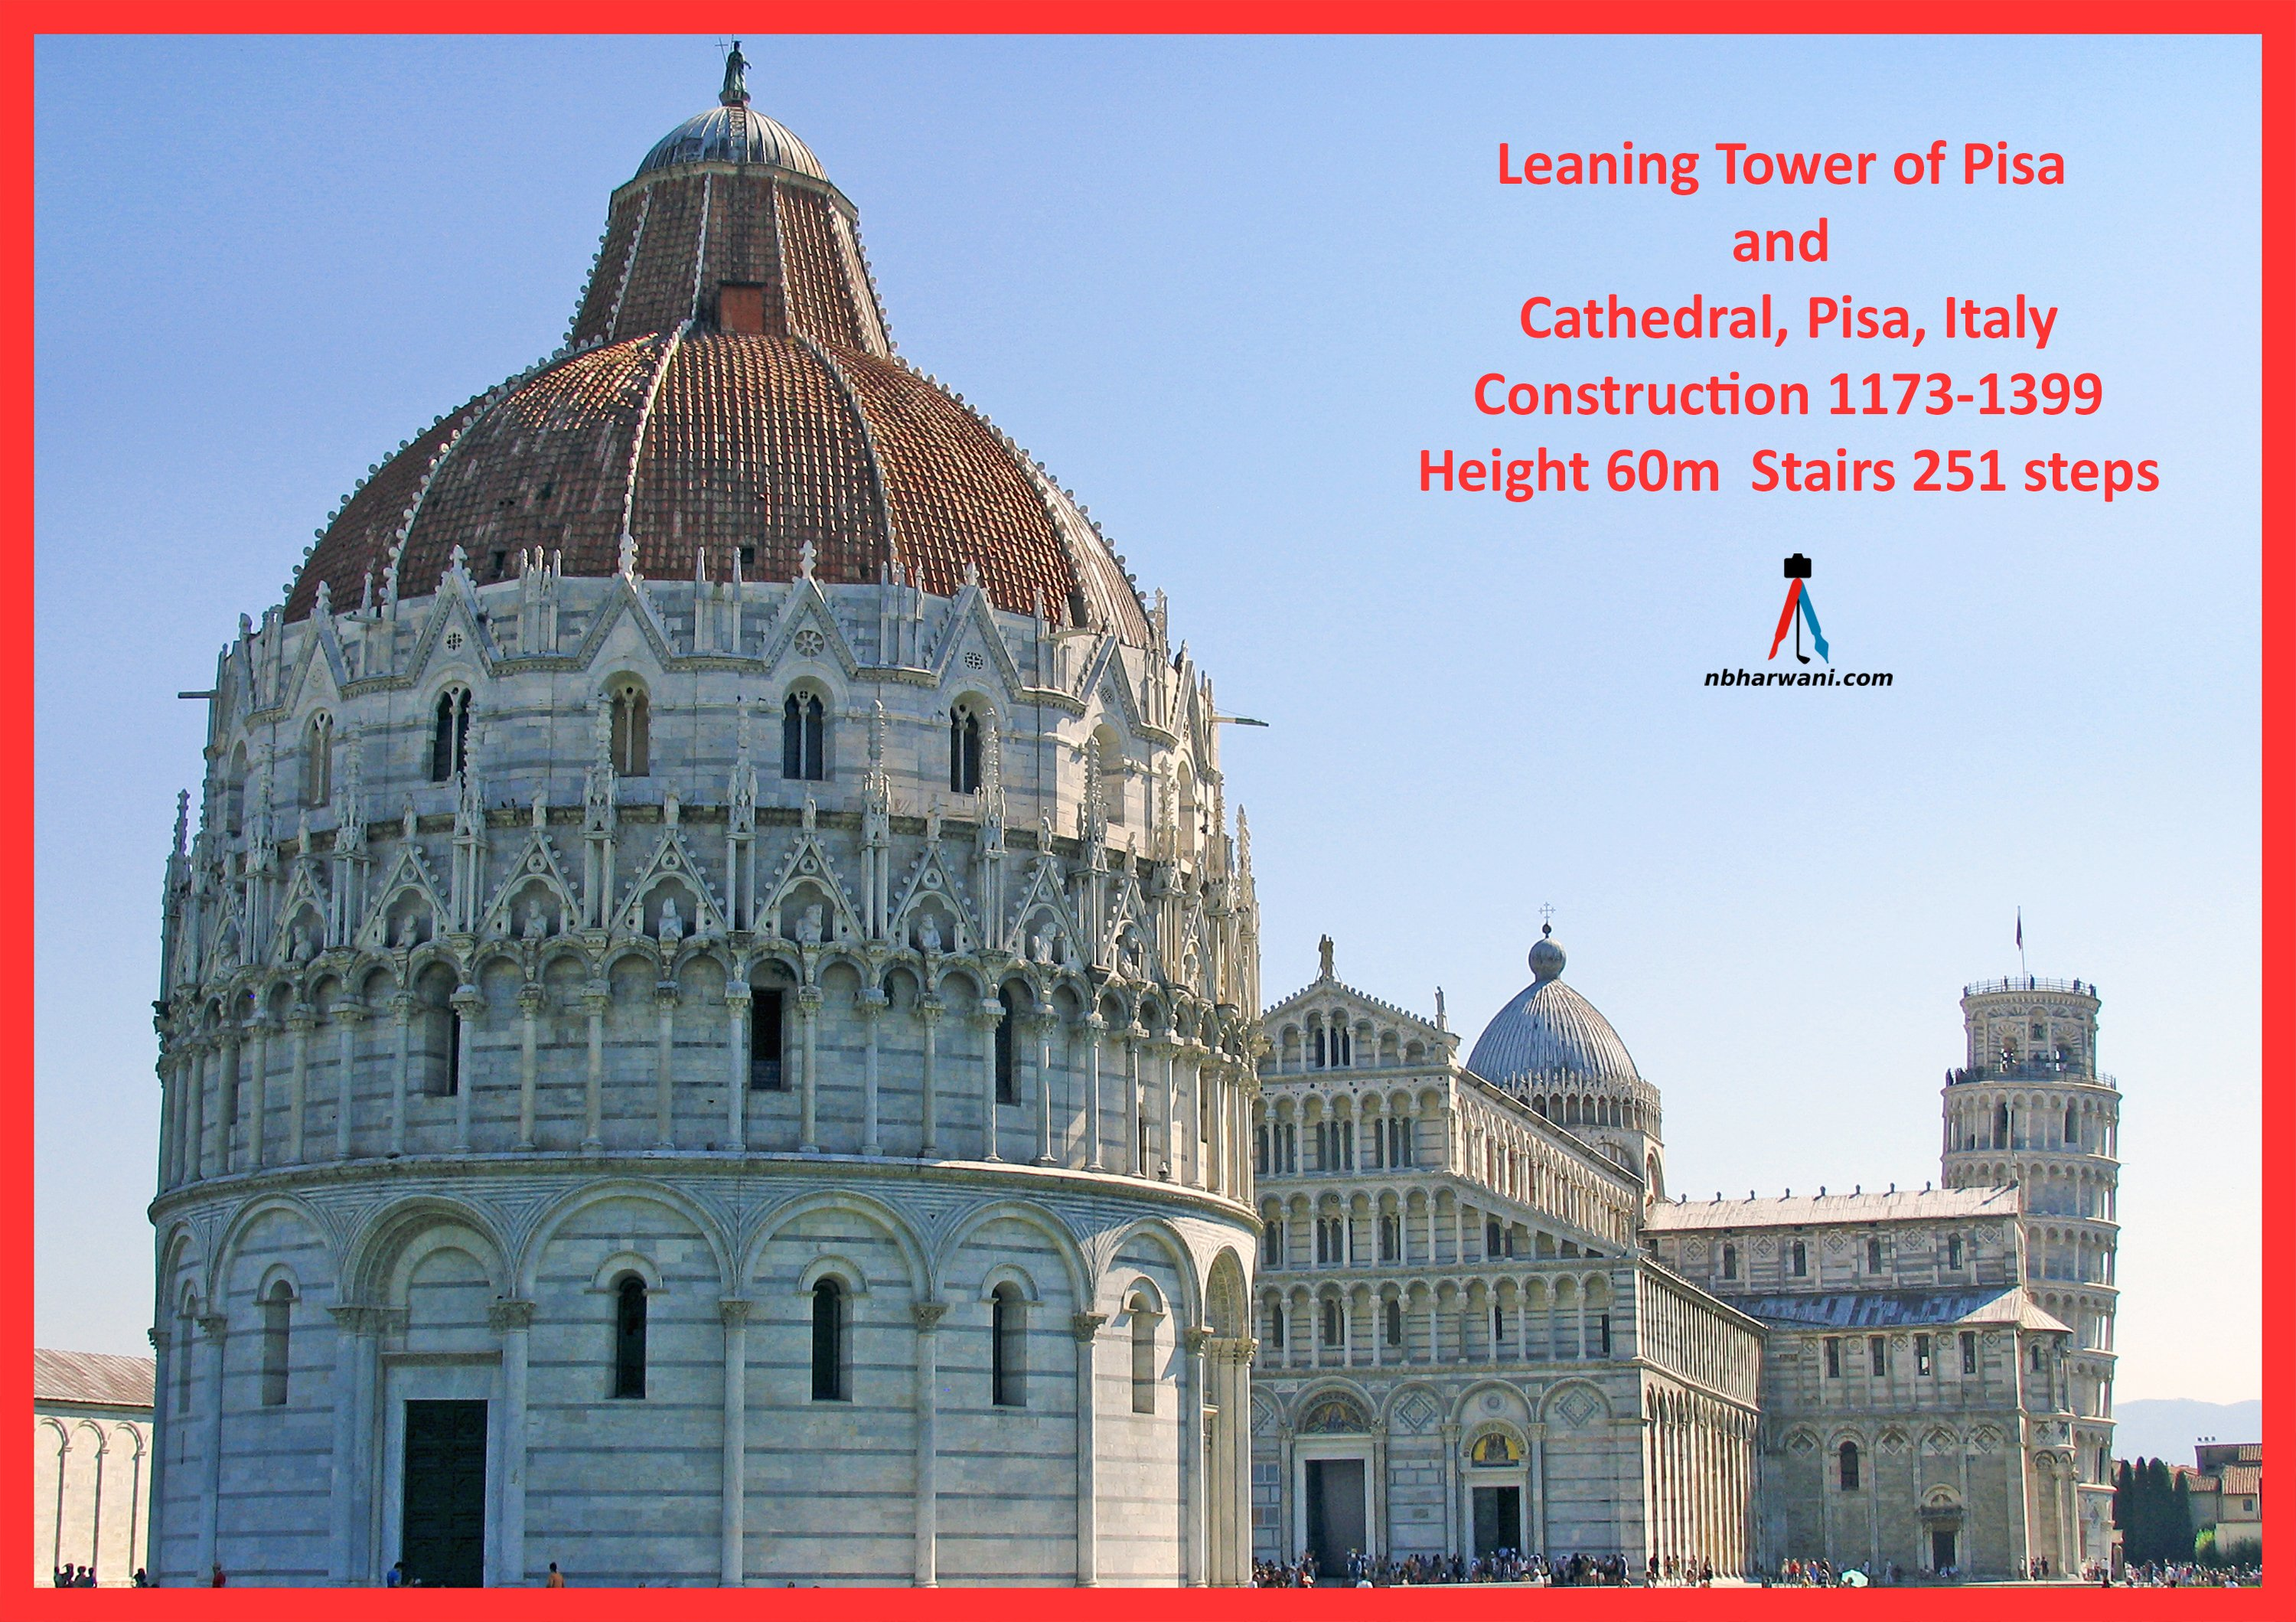 Piazza dei Miracoli (English: Square of Miracles), formally known as Piazza del Duomo (English: Cathedral Square), is a walled 8.87-hectare area located in Pisa, Tuscany, Italy. (Dr. Noorali Bharwani)